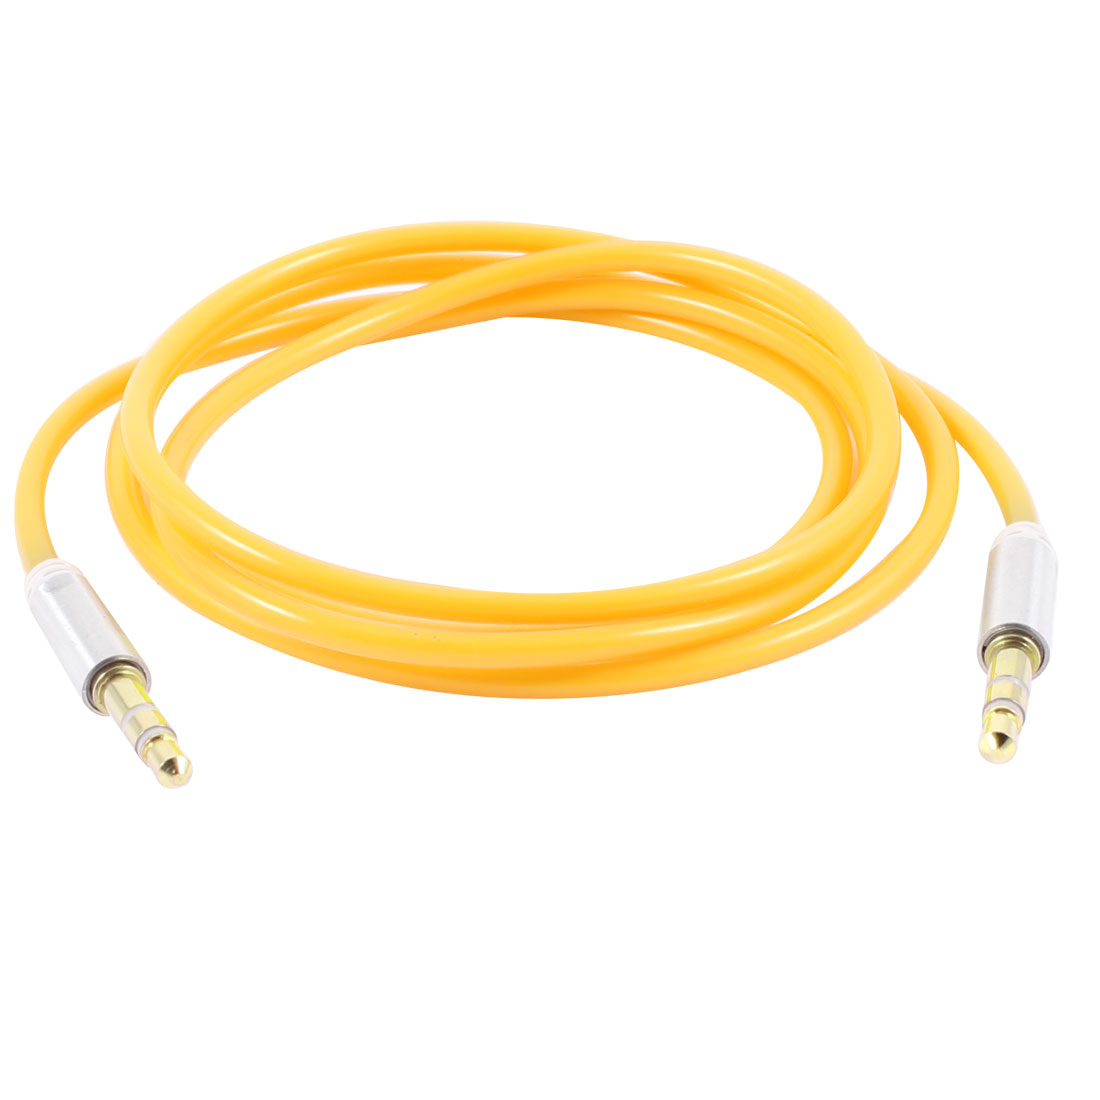 3.34ft 1.02M 3.5mm M/M Audio Aux Cable Cord Yellow for Smartphone Mp3 Mp4 PC